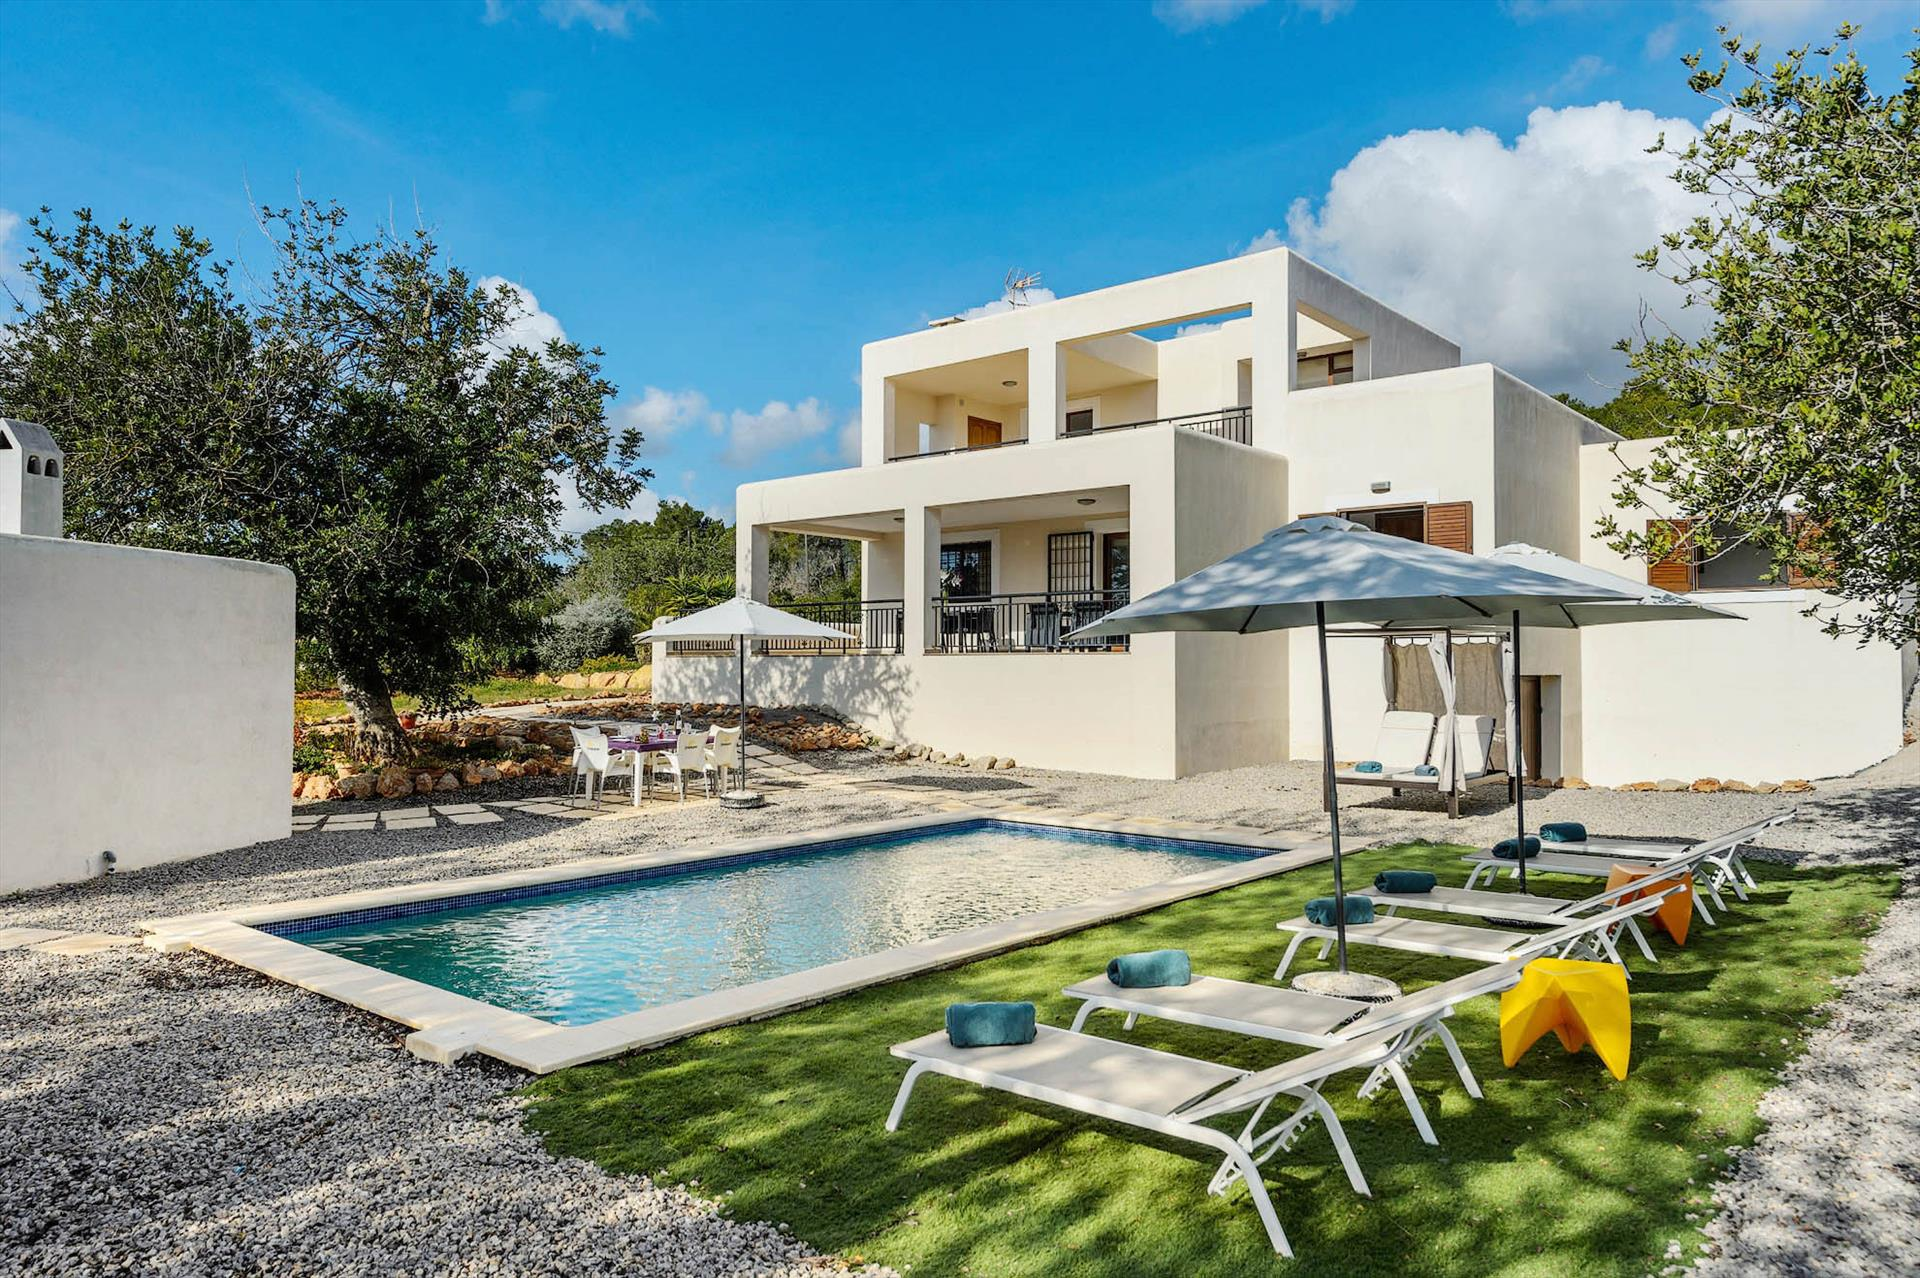 White Water, Villa  with private pool in San Carlos, Ibiza, Spain for 6 persons...